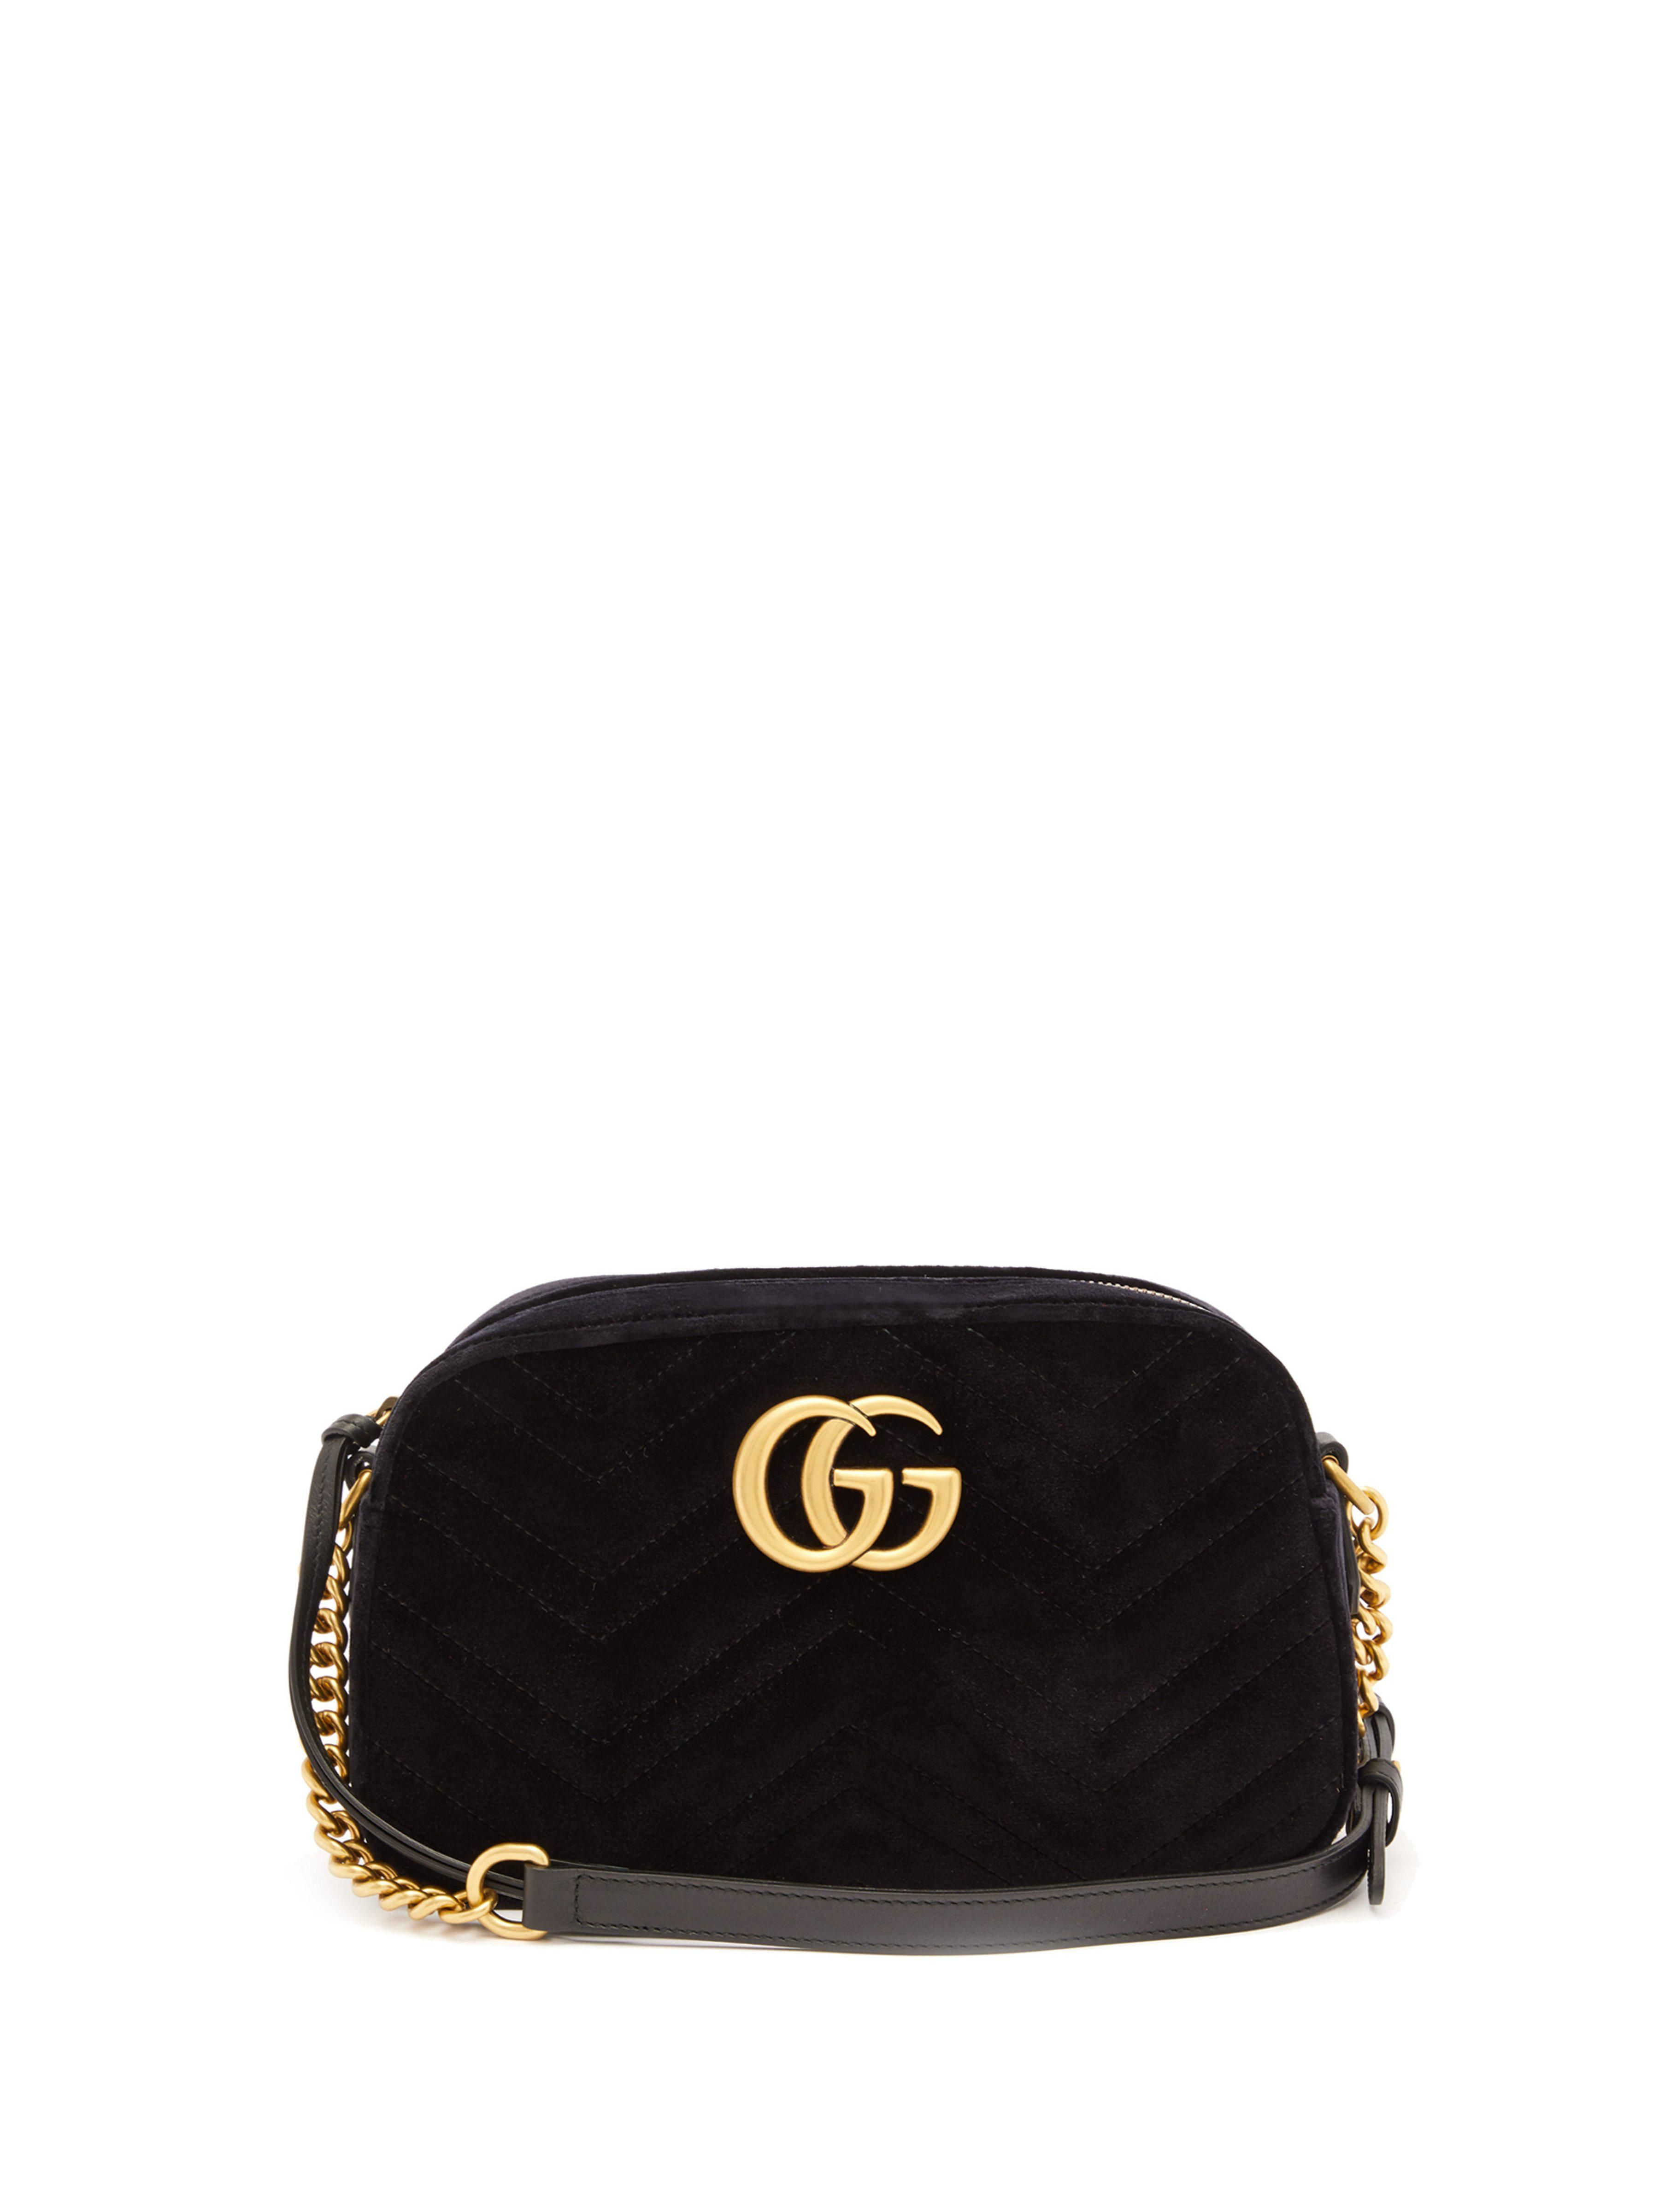 9bc422415 Gg Marmont Small Quilted Velvet Cross Body Bag - Black - Gucci Shoulder bags